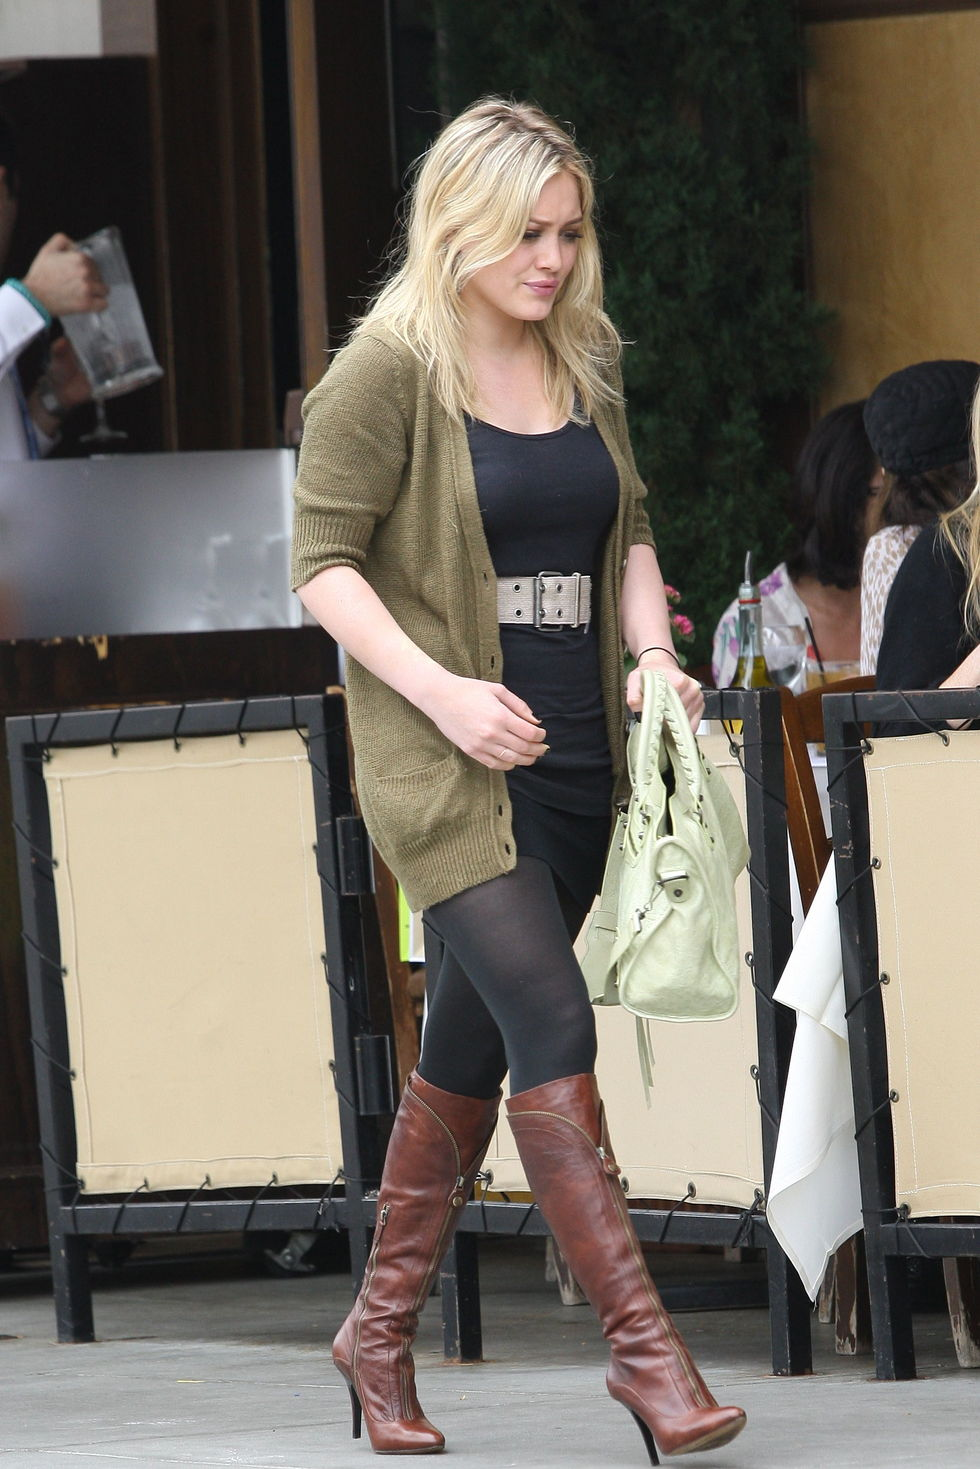 hilary-duff-candids-in-beverly-hills-3-01